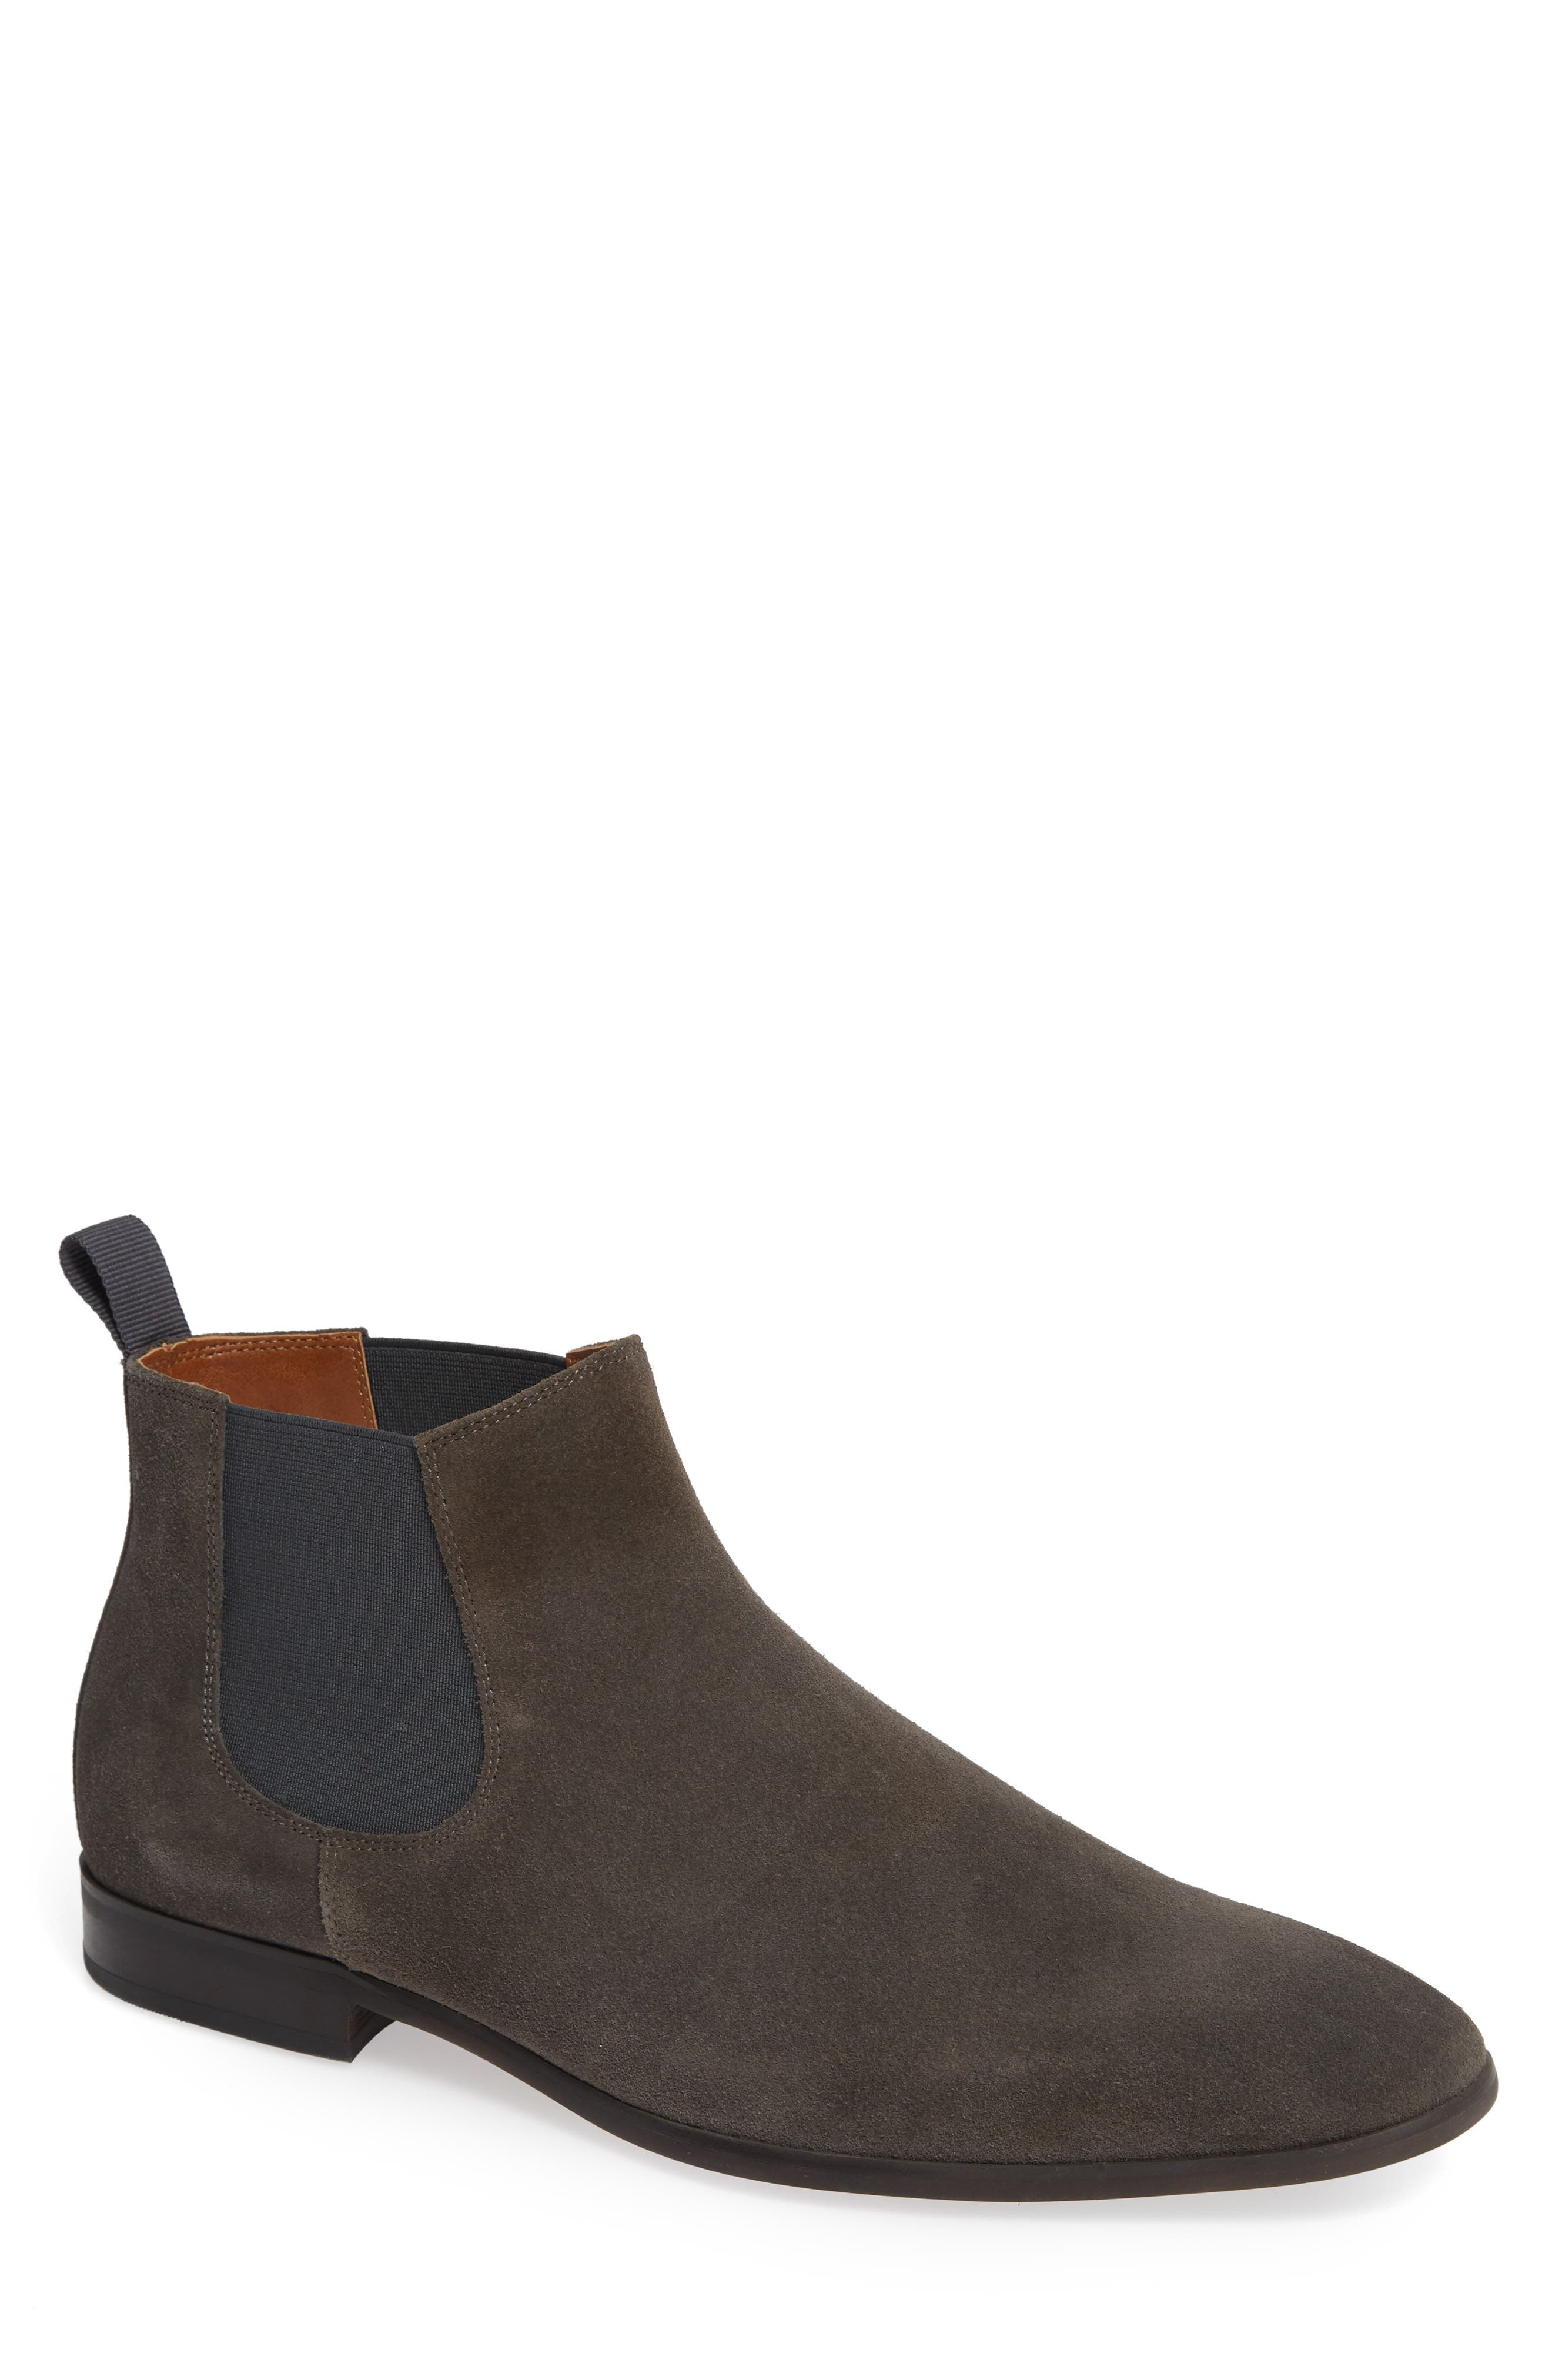 Edward Chelsea Boot,                             Main thumbnail 1, color,                             CHARCOAL SUEDE